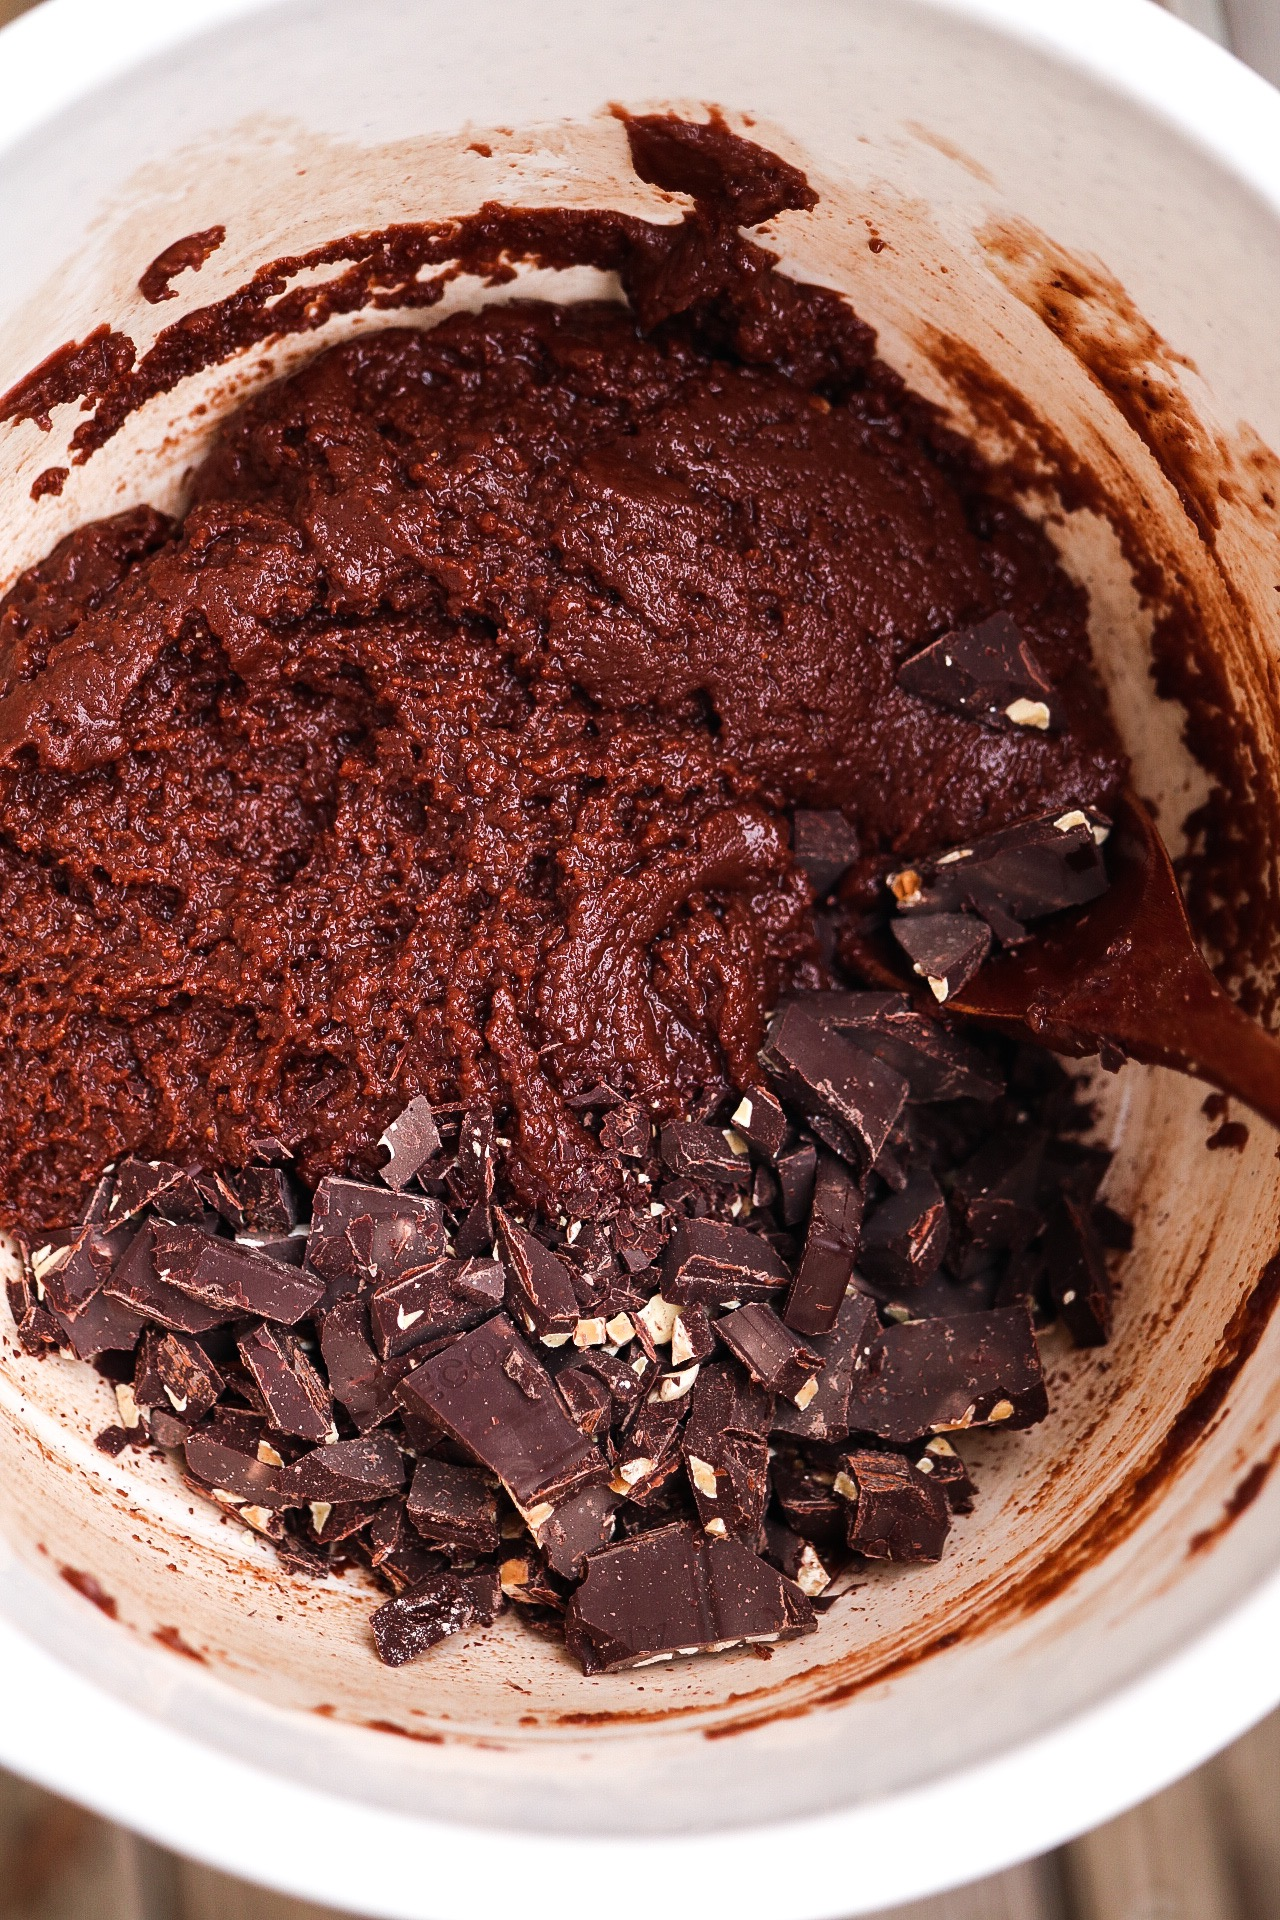 Fold in your chopped dark chocolate before baking!